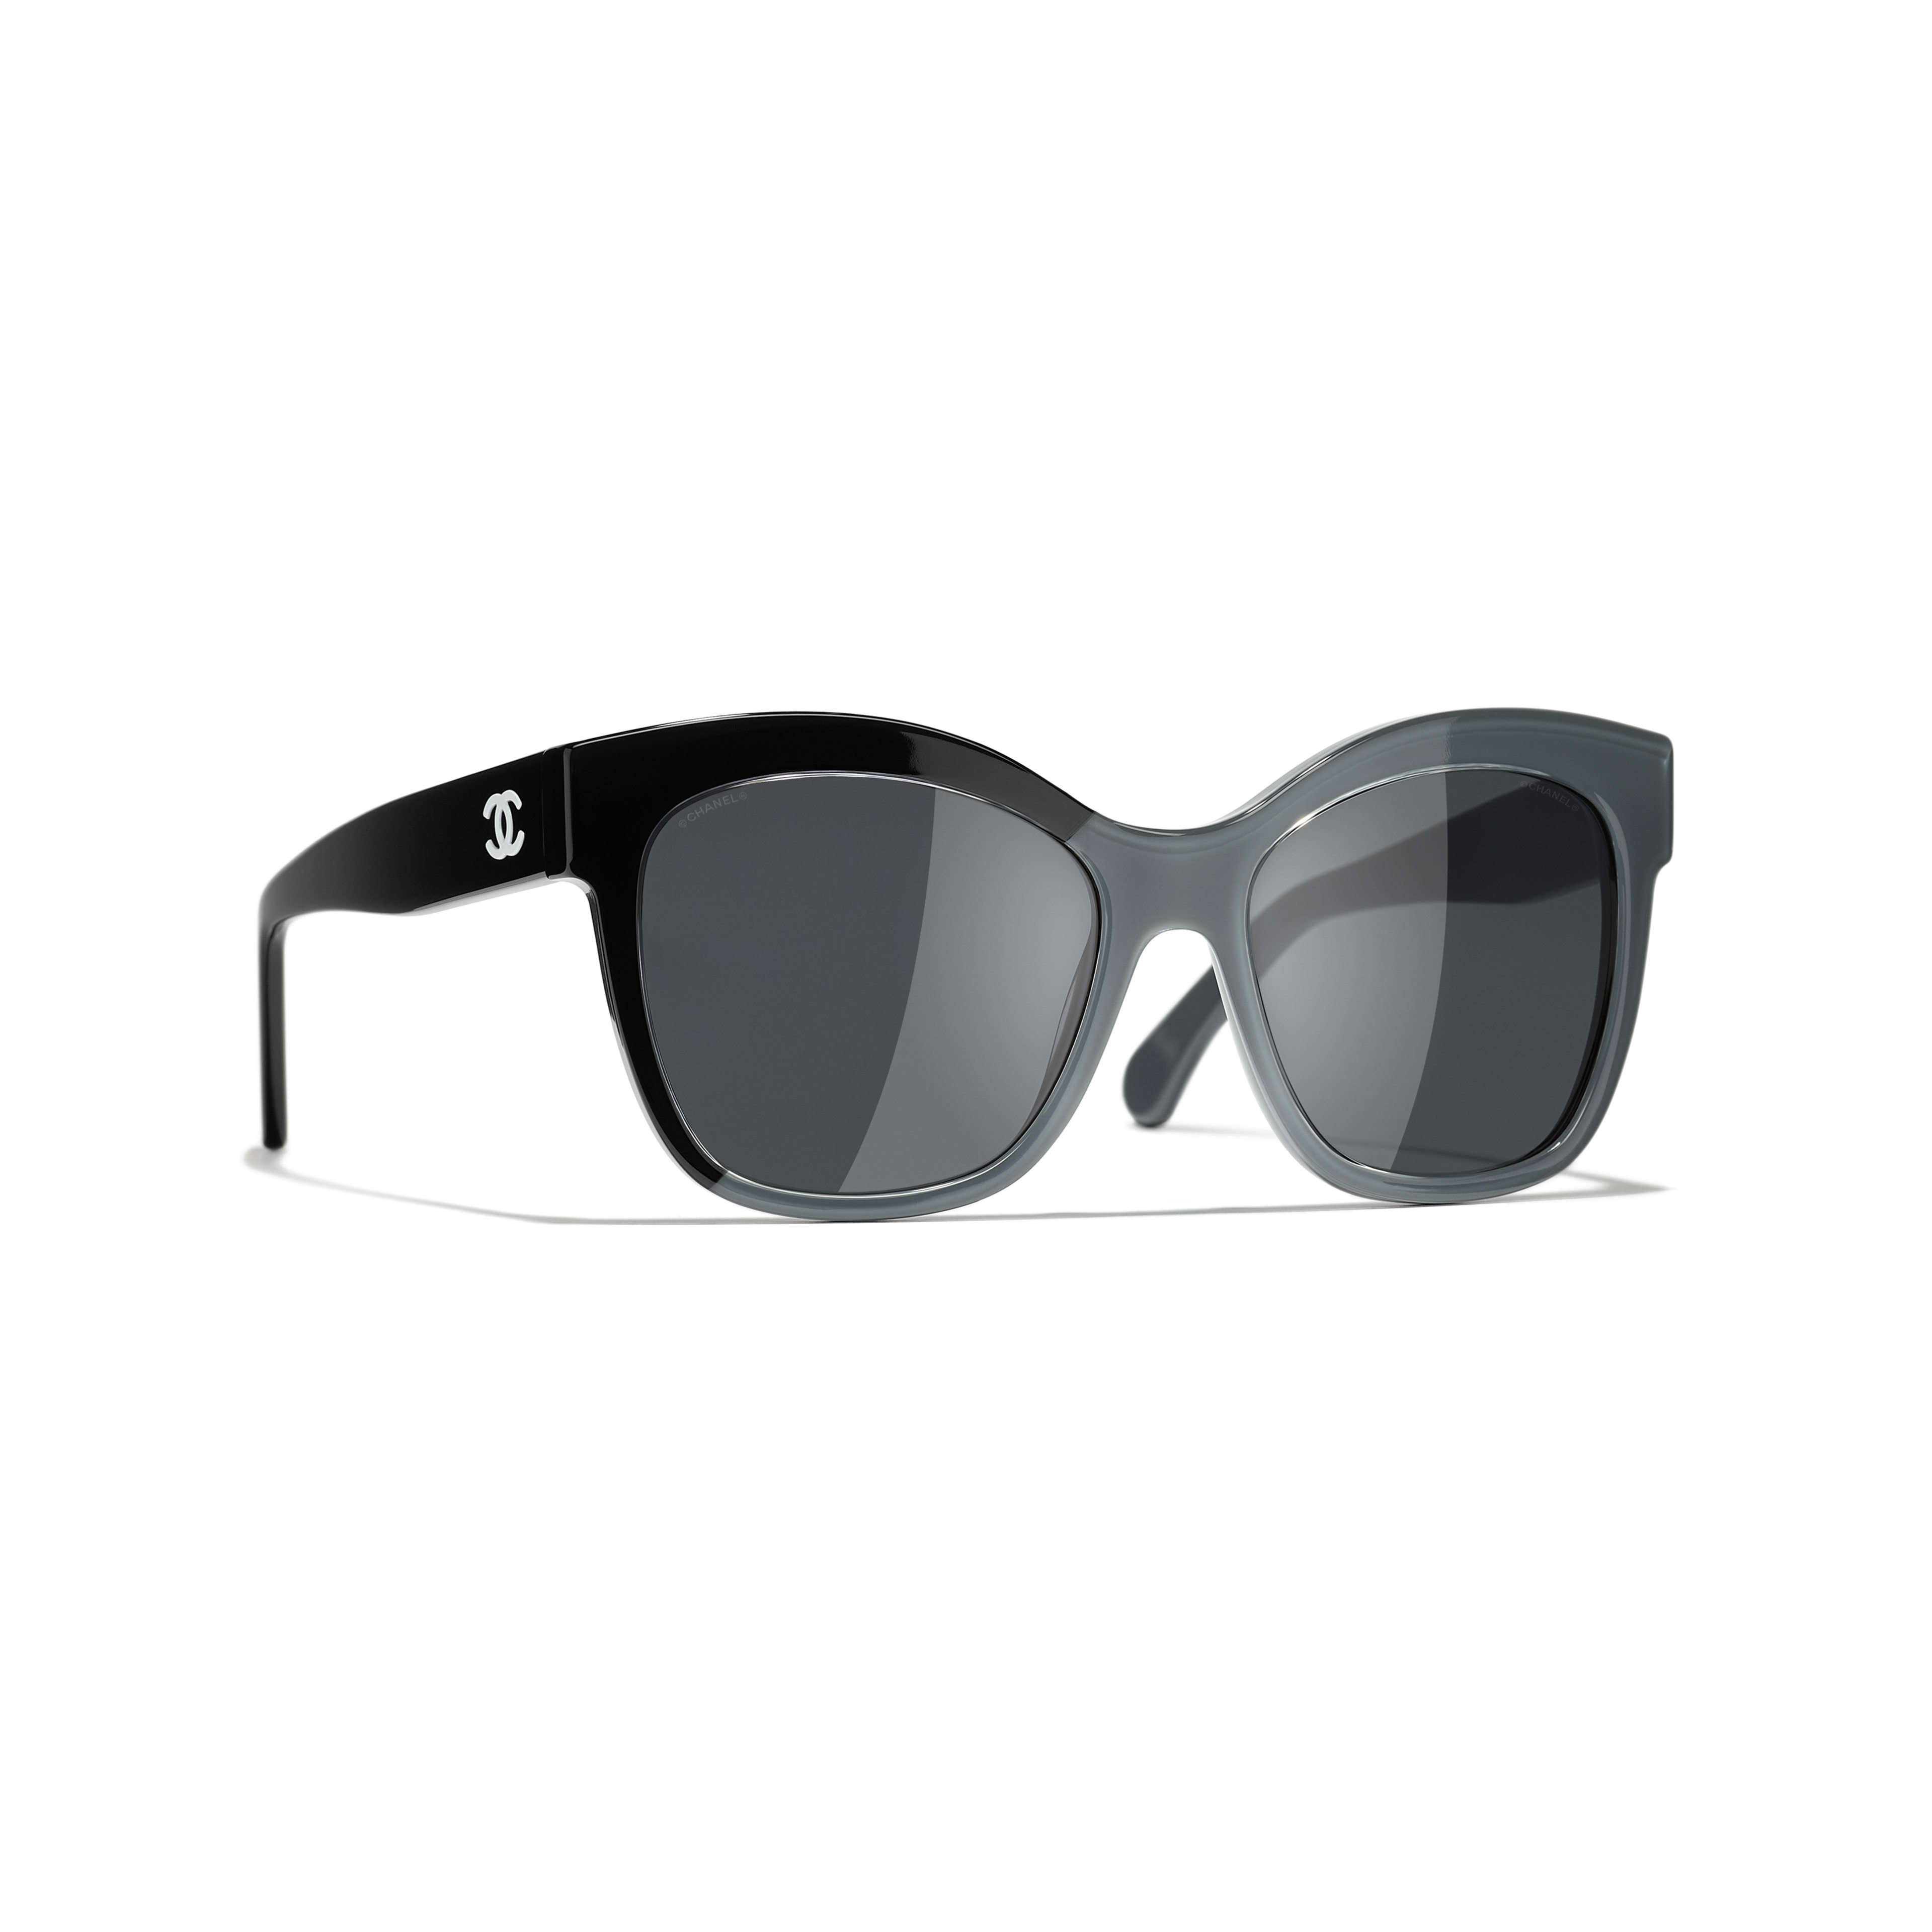 Butterfly Sunglasses - Black & Gray - Acetate - CHANEL - Default view - see standard sized version